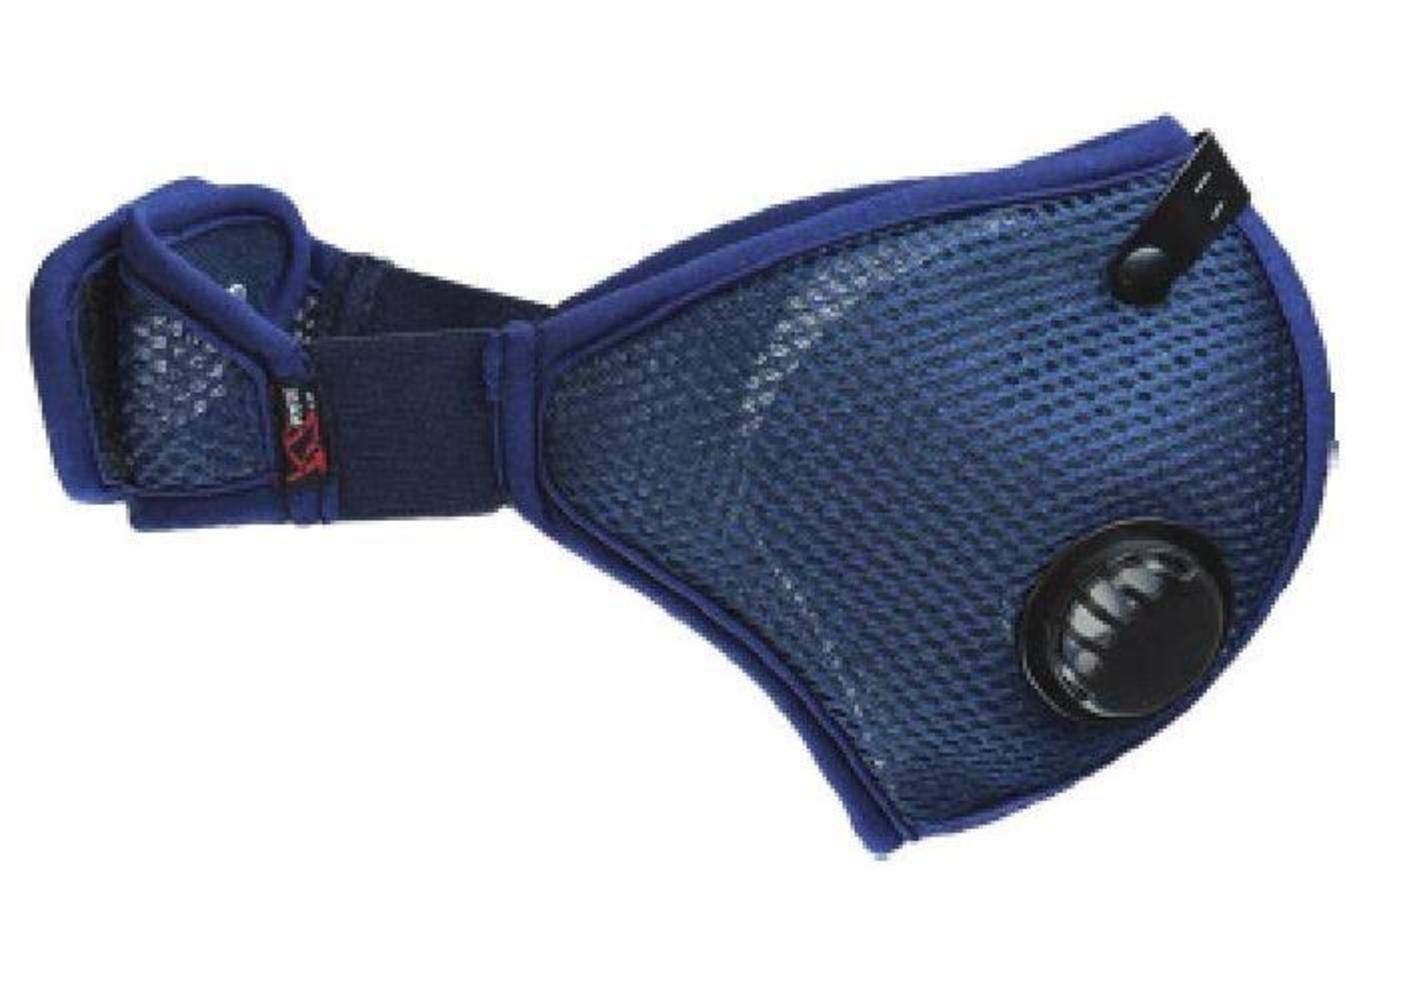 RZ Mask RZ Mesh Mask Navy (Blue, Adult) by RZ Mask